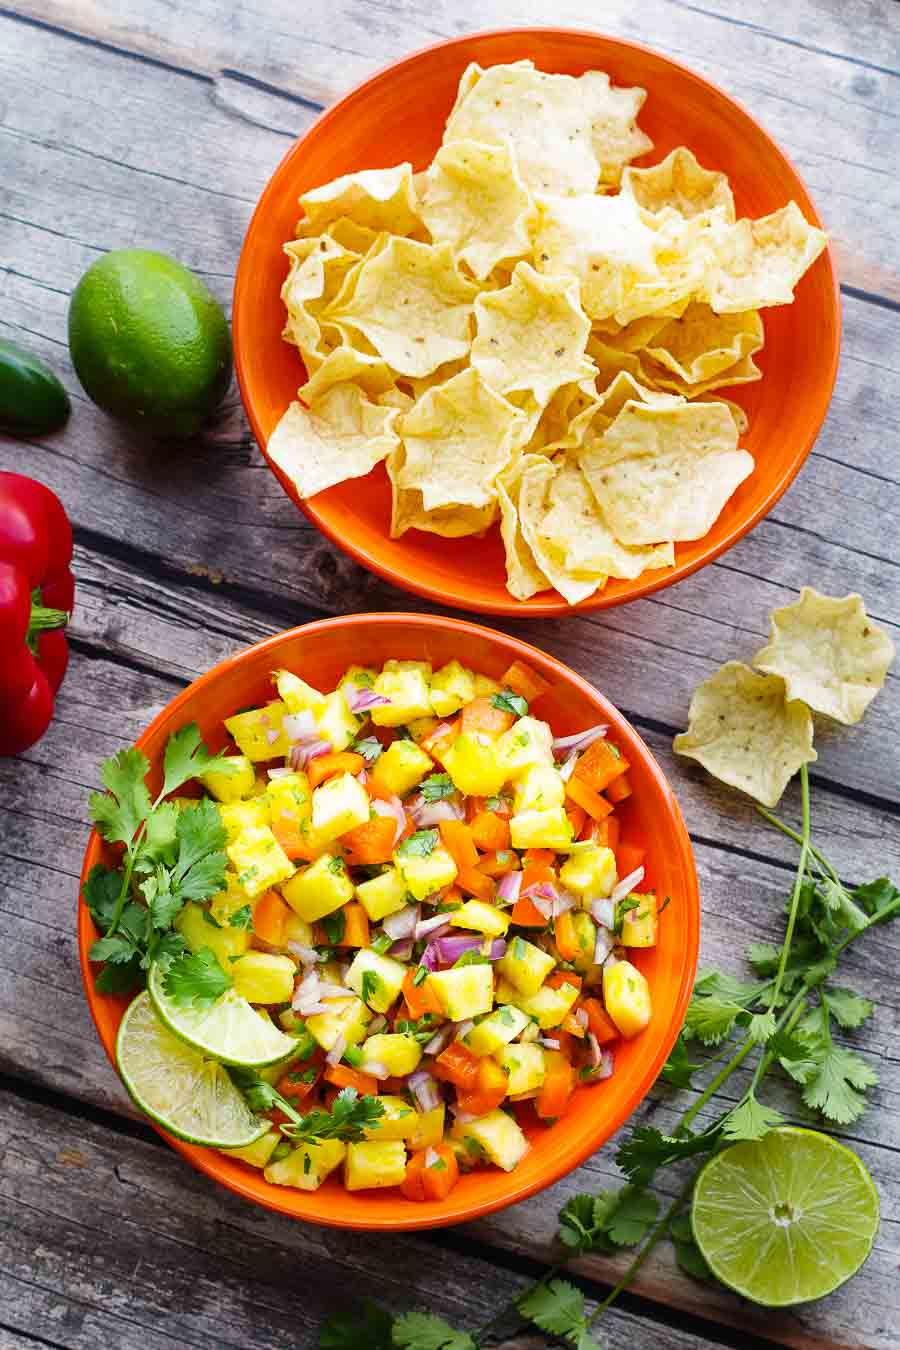 Pineapple Pico de Gallo - Fresh Salsa | www.homeandplate.com | Enjoy the sweet flavors of the tropics with this homemade delicious Pineapple Pico de Gallo. Eat it with chips, on tacos or spoon it over your favorite grilled seafood or chicken. #pineapplesalsa #pineapplepicodegallo